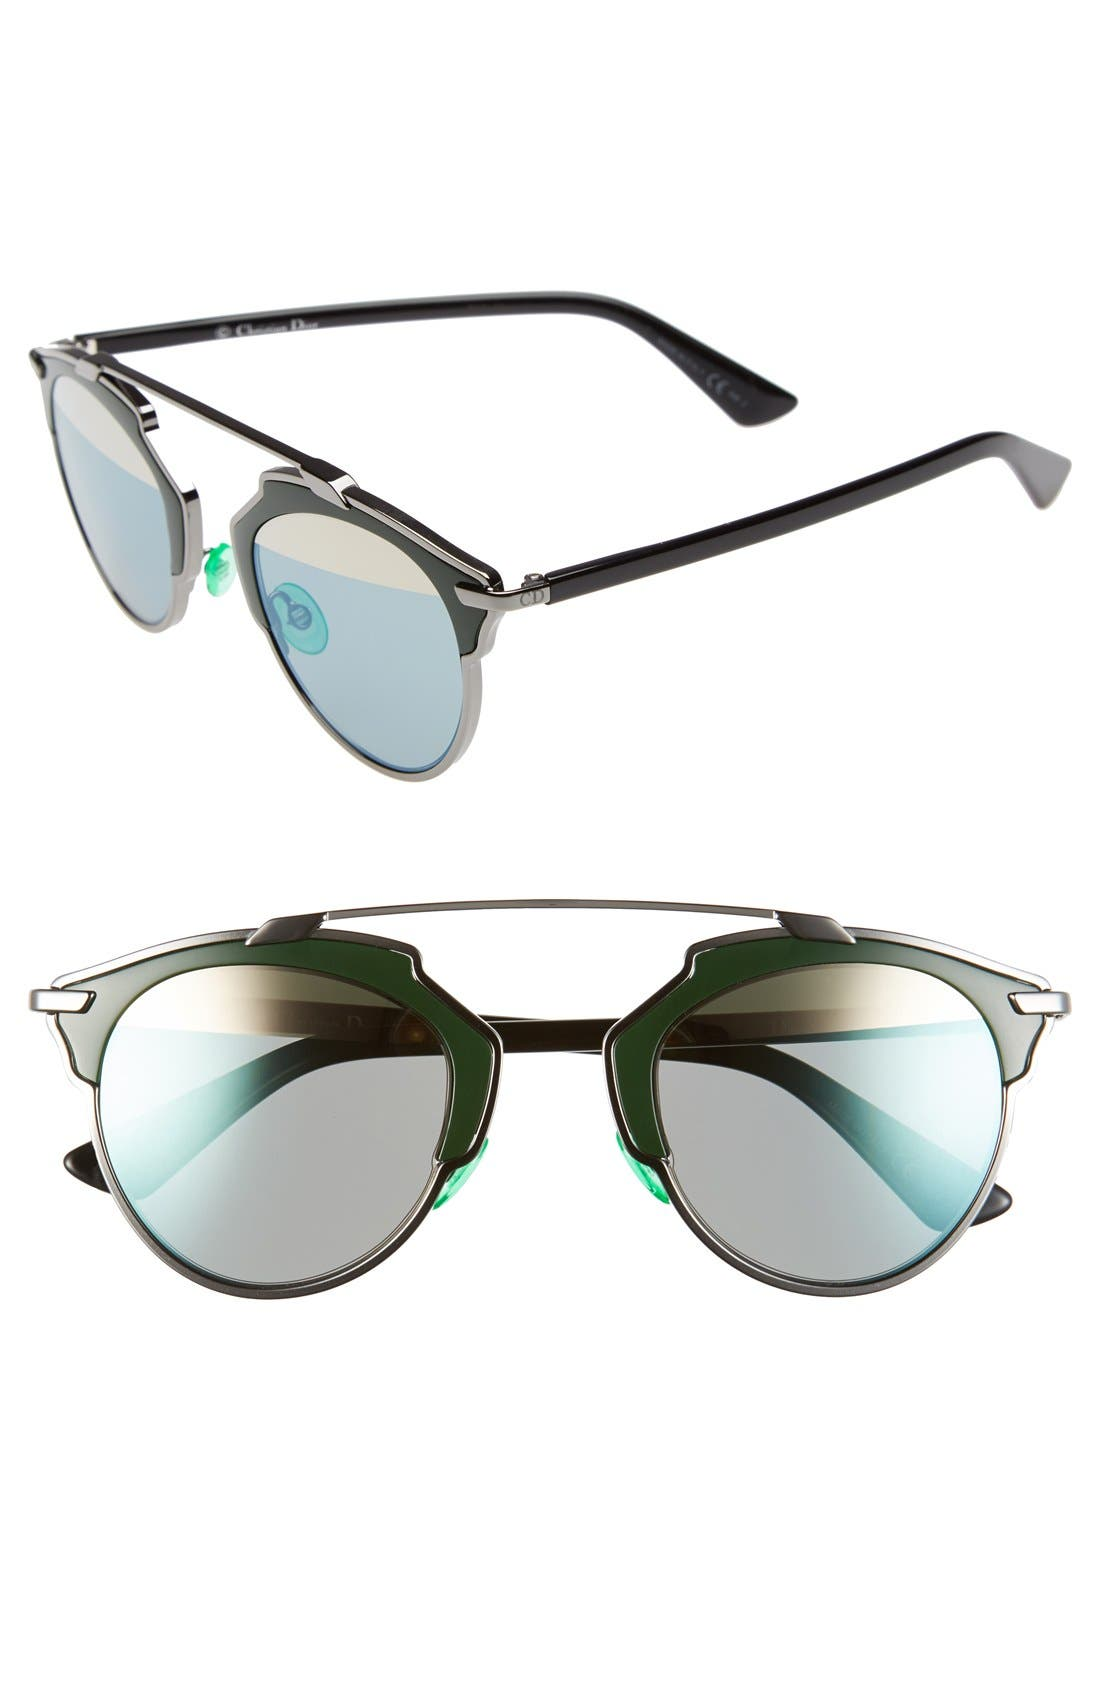 So Real 48mm Brow Bar Sunglasses,                         Main,                         color, Ruthenium/ Green/ Black